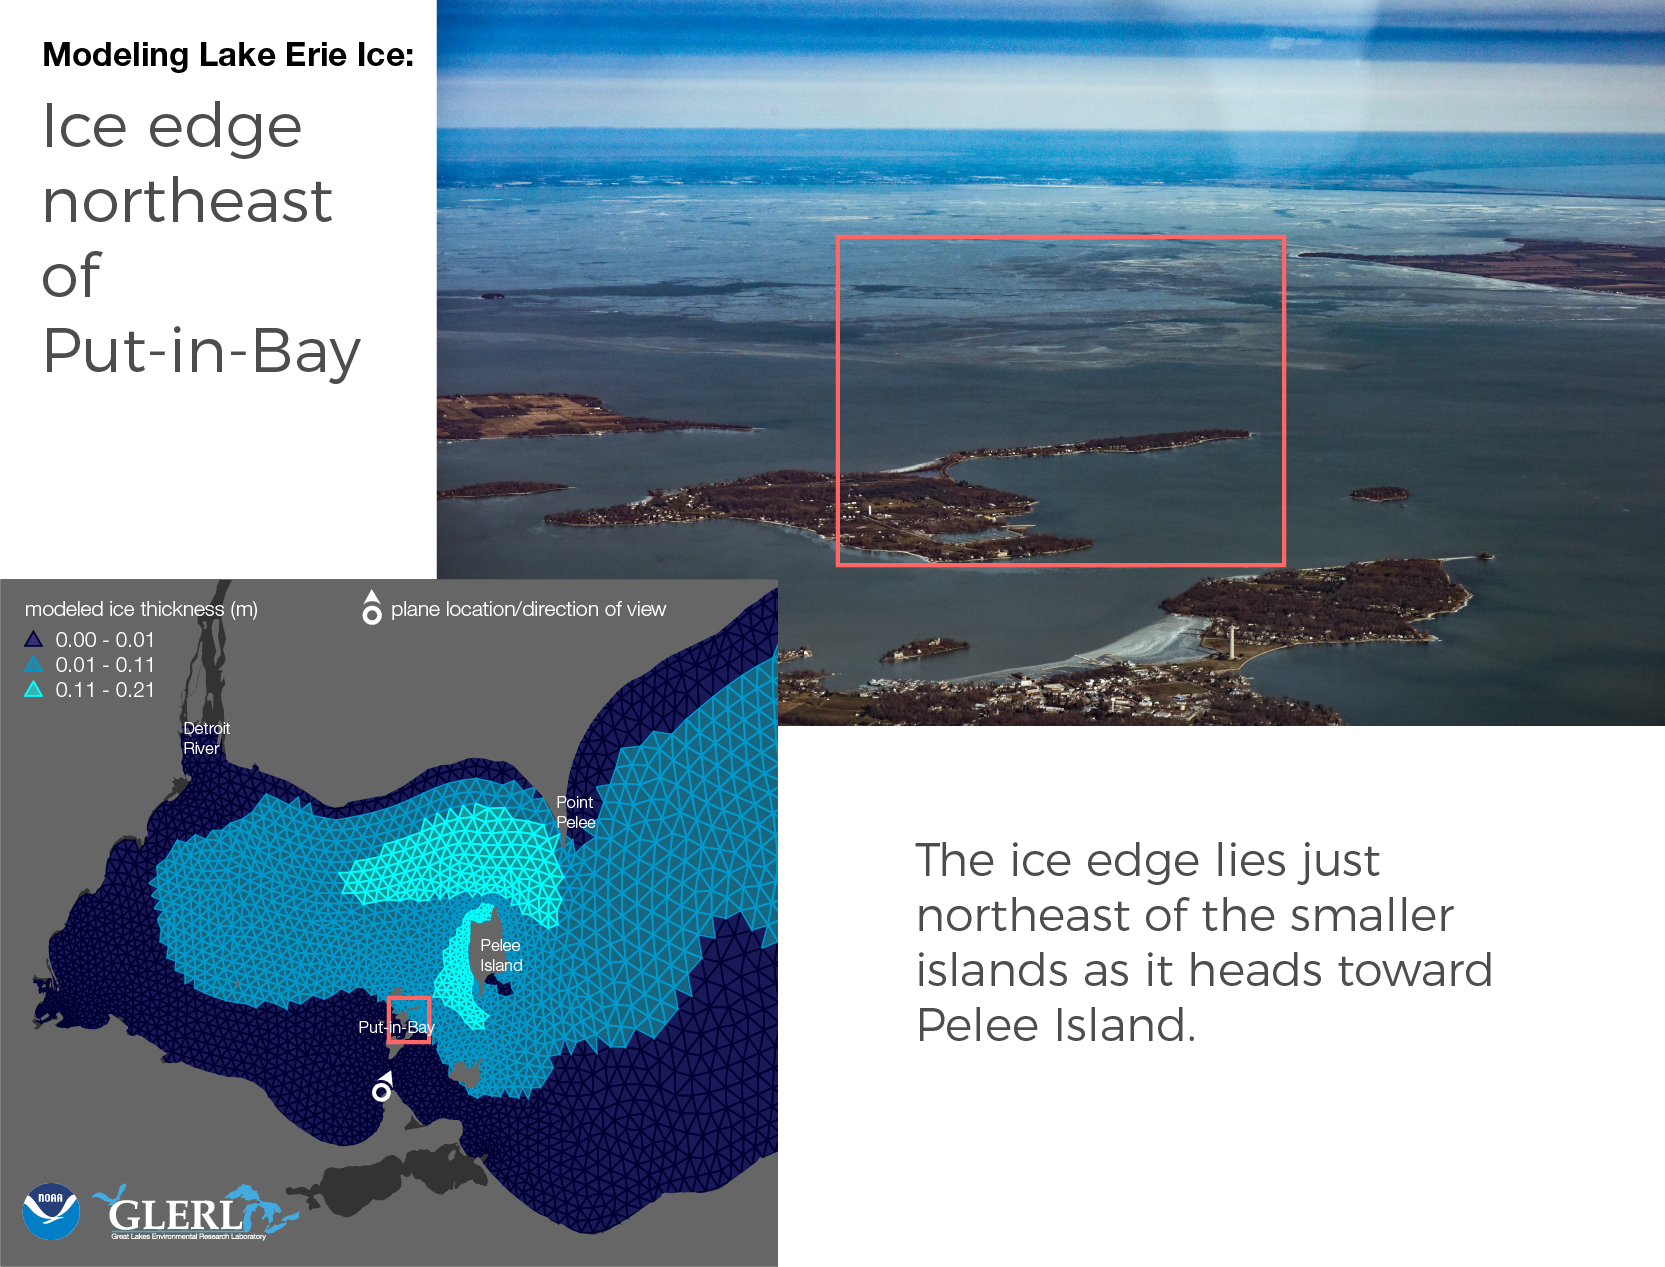 Ice edge northeast of Put-in-Bay: The ice edge lies just northeast of the smaller islands as it heads toward Pelee Island.